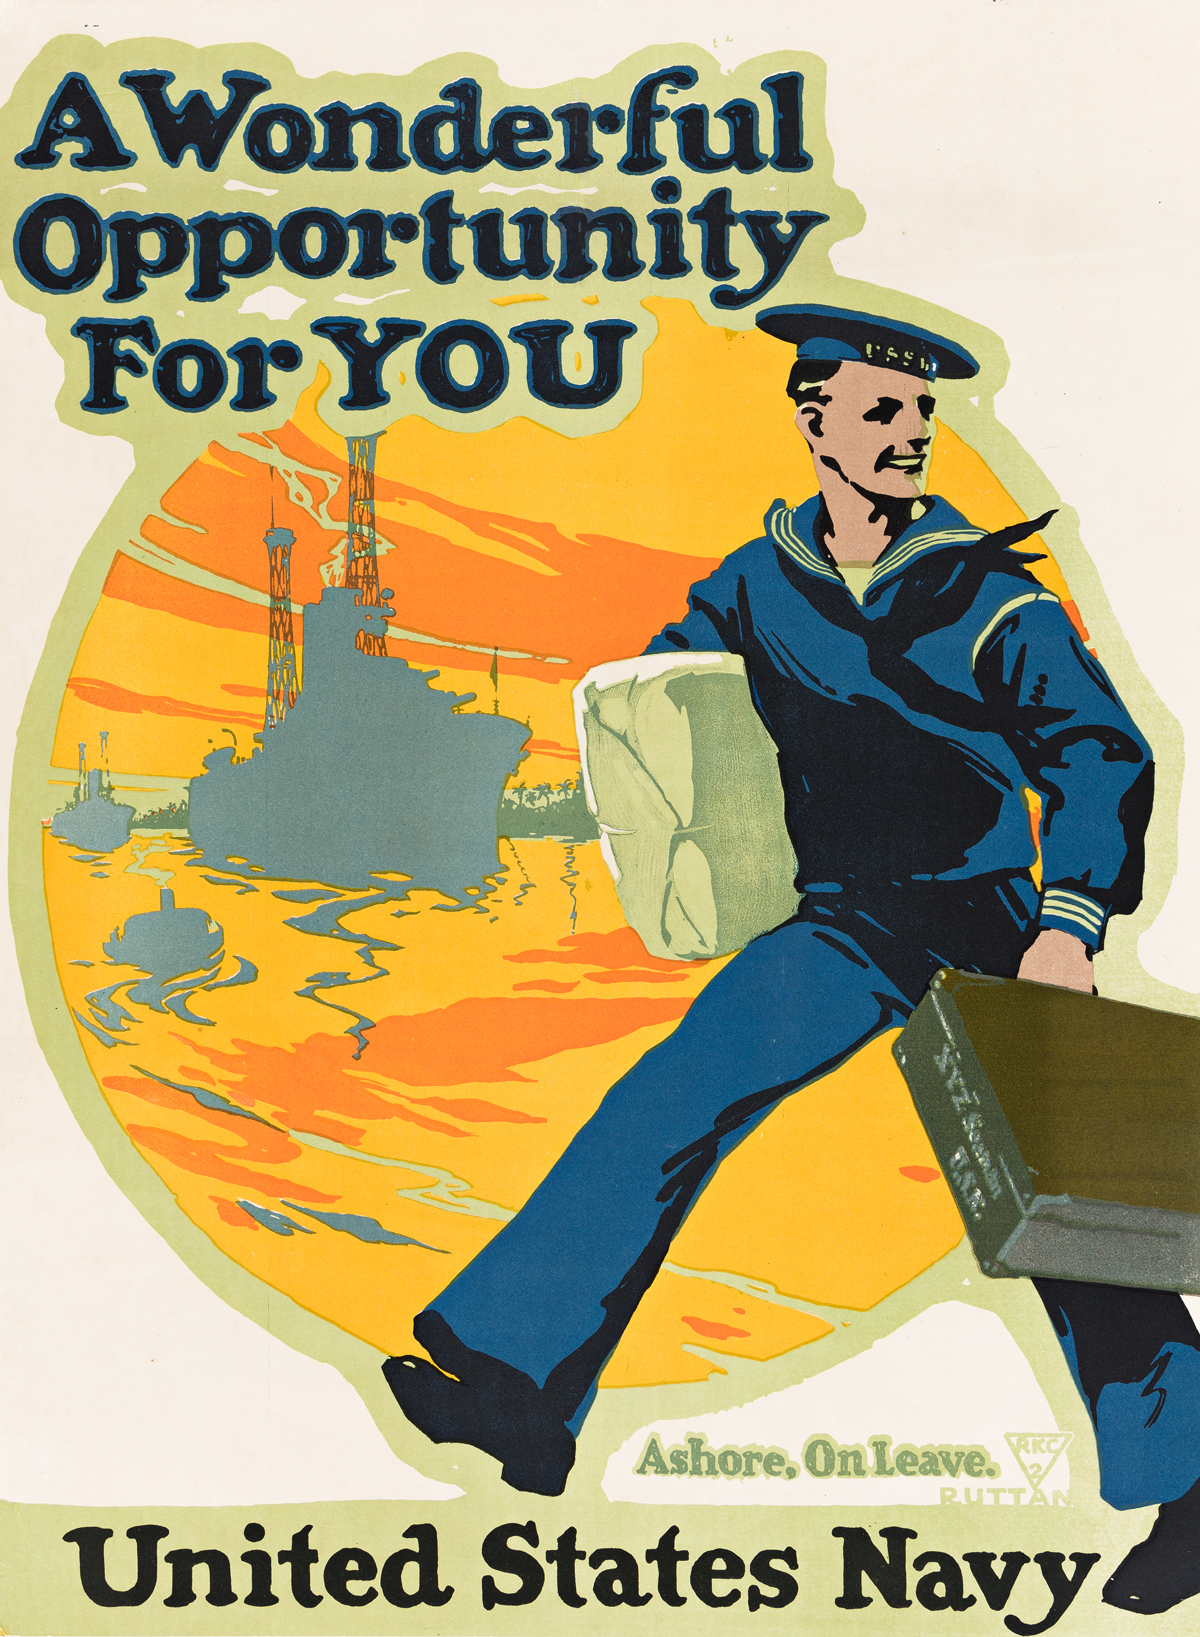 CHARLES EDWIN RUTTAN (1884-1939).  A WONDERFUL OPPORTUNITY FOR YOU / UNITED STATES NAVY. 1917. 28x20½ inches, 70x52 cm. [New-Art Lithog